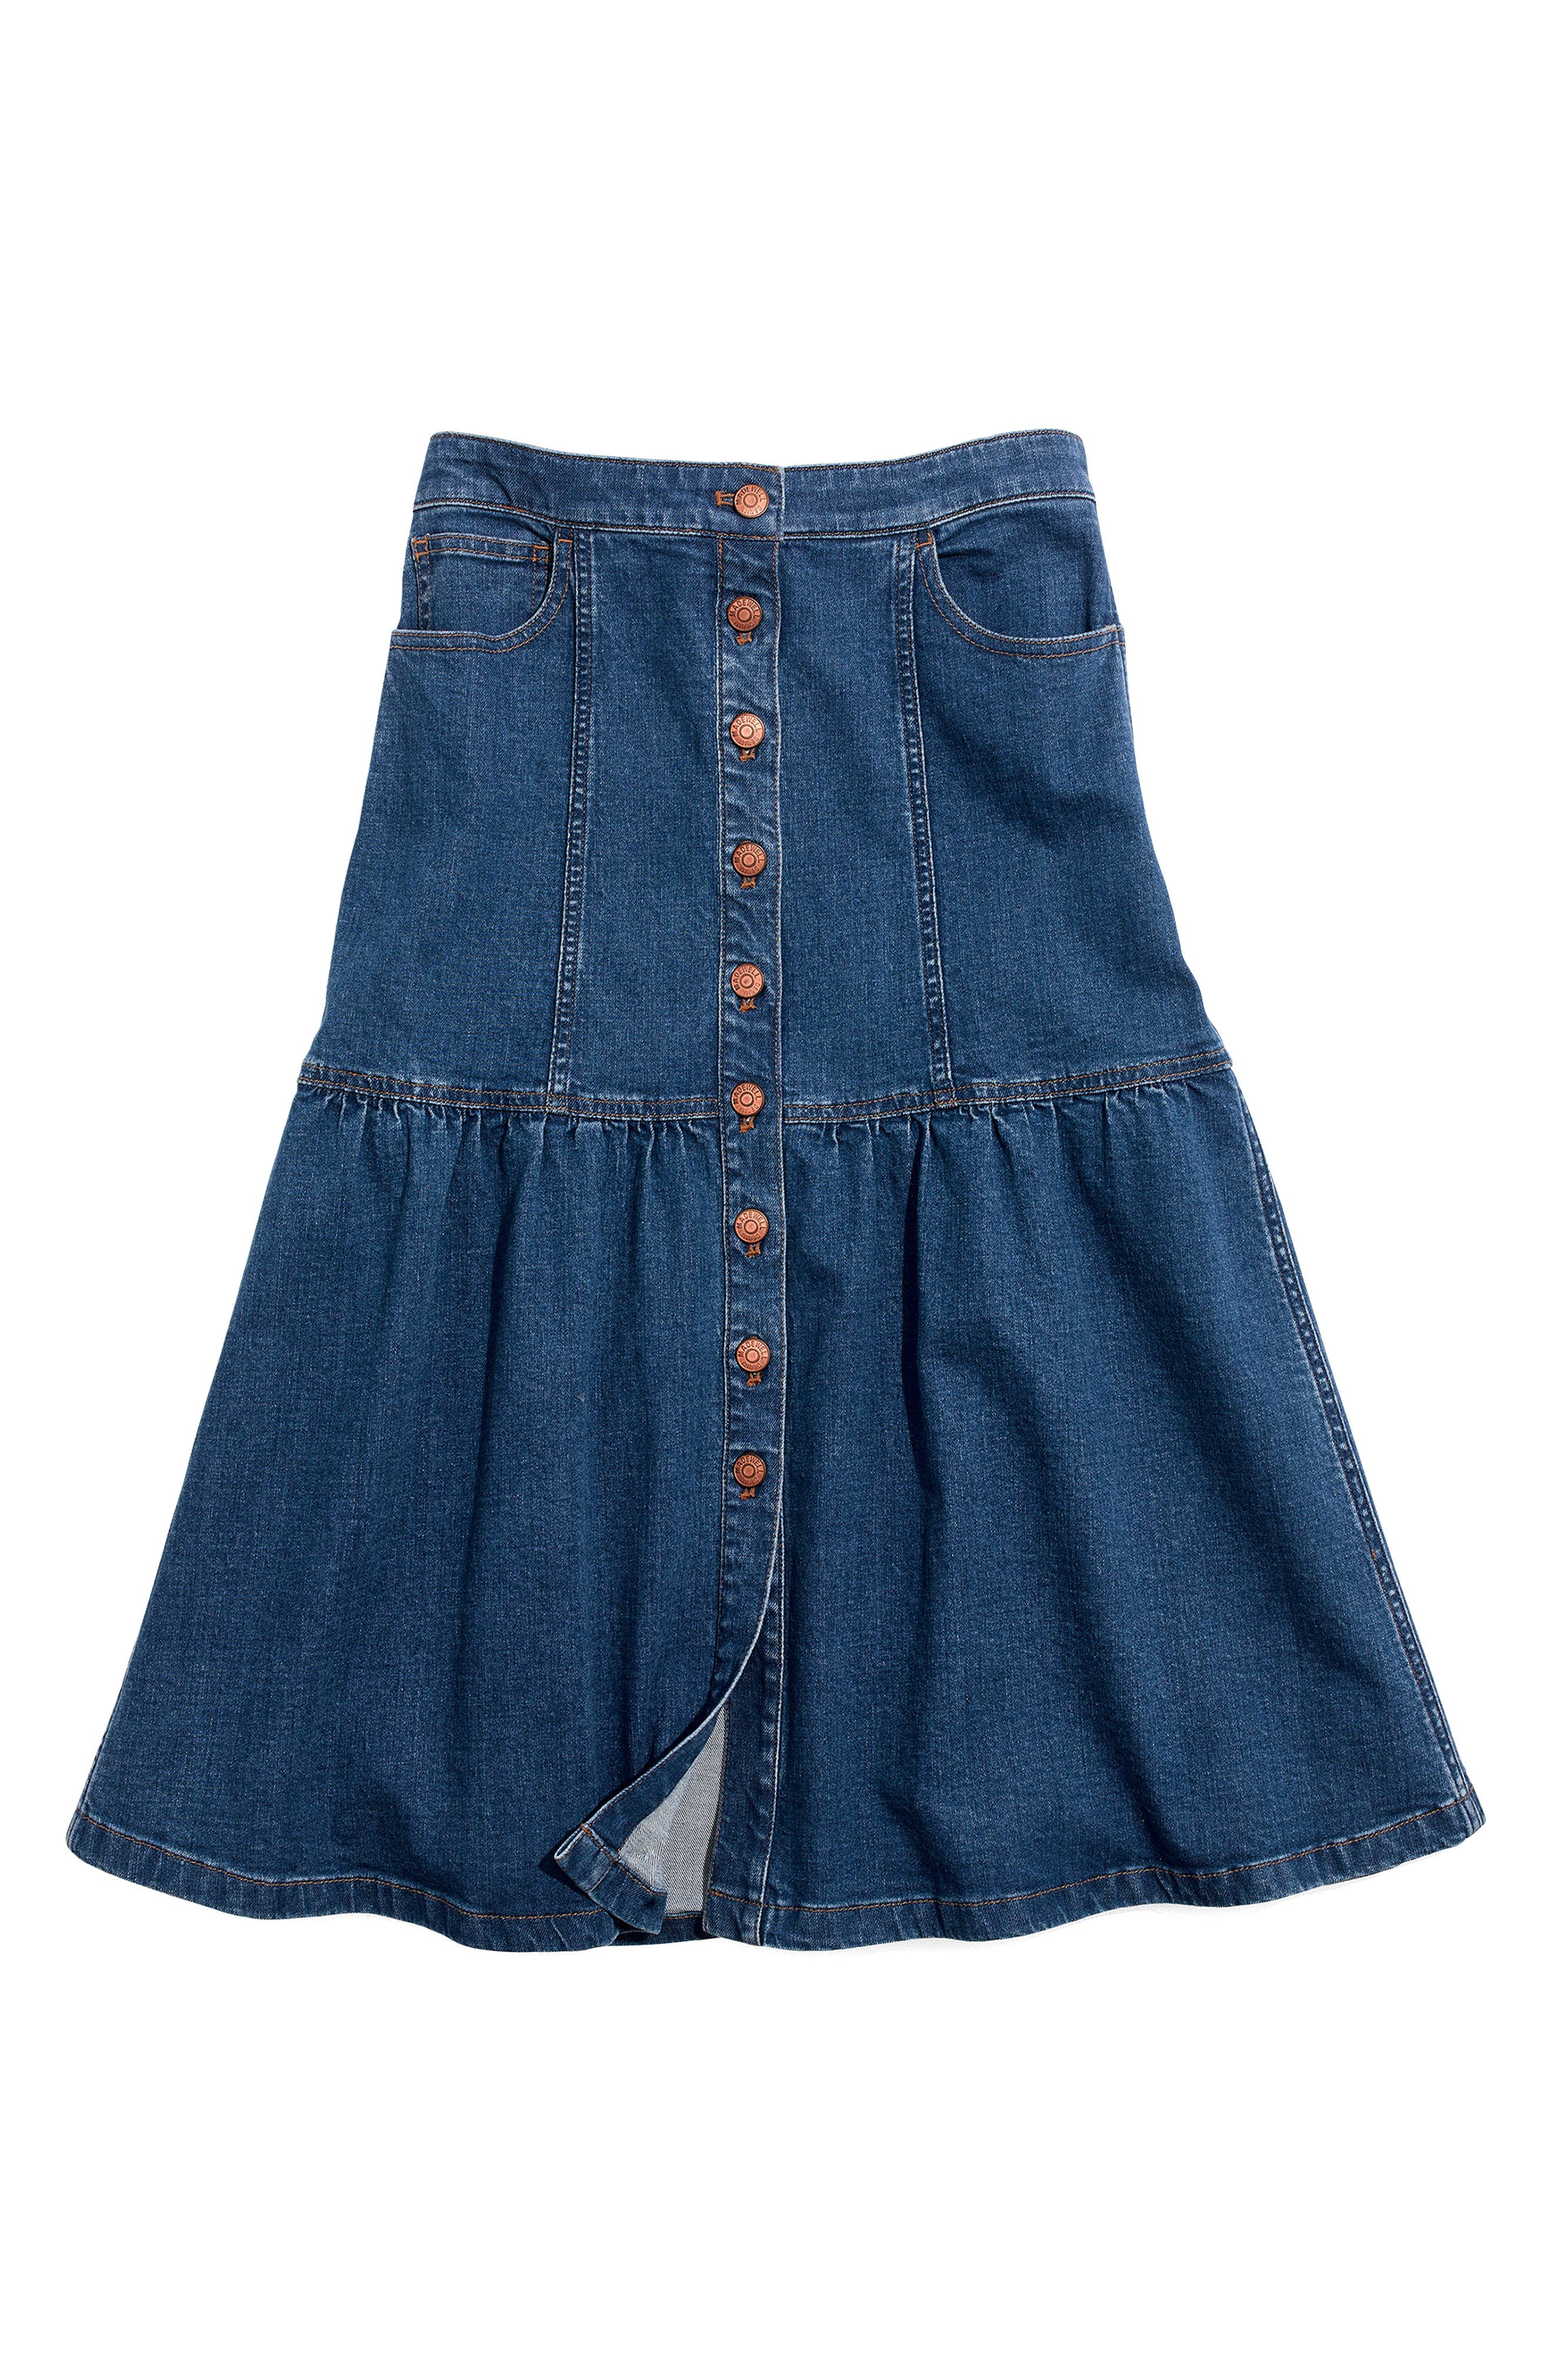 Bayview Tiered Denim Midi Skirt,                             Alternate thumbnail 3, color,                             Winona Wash